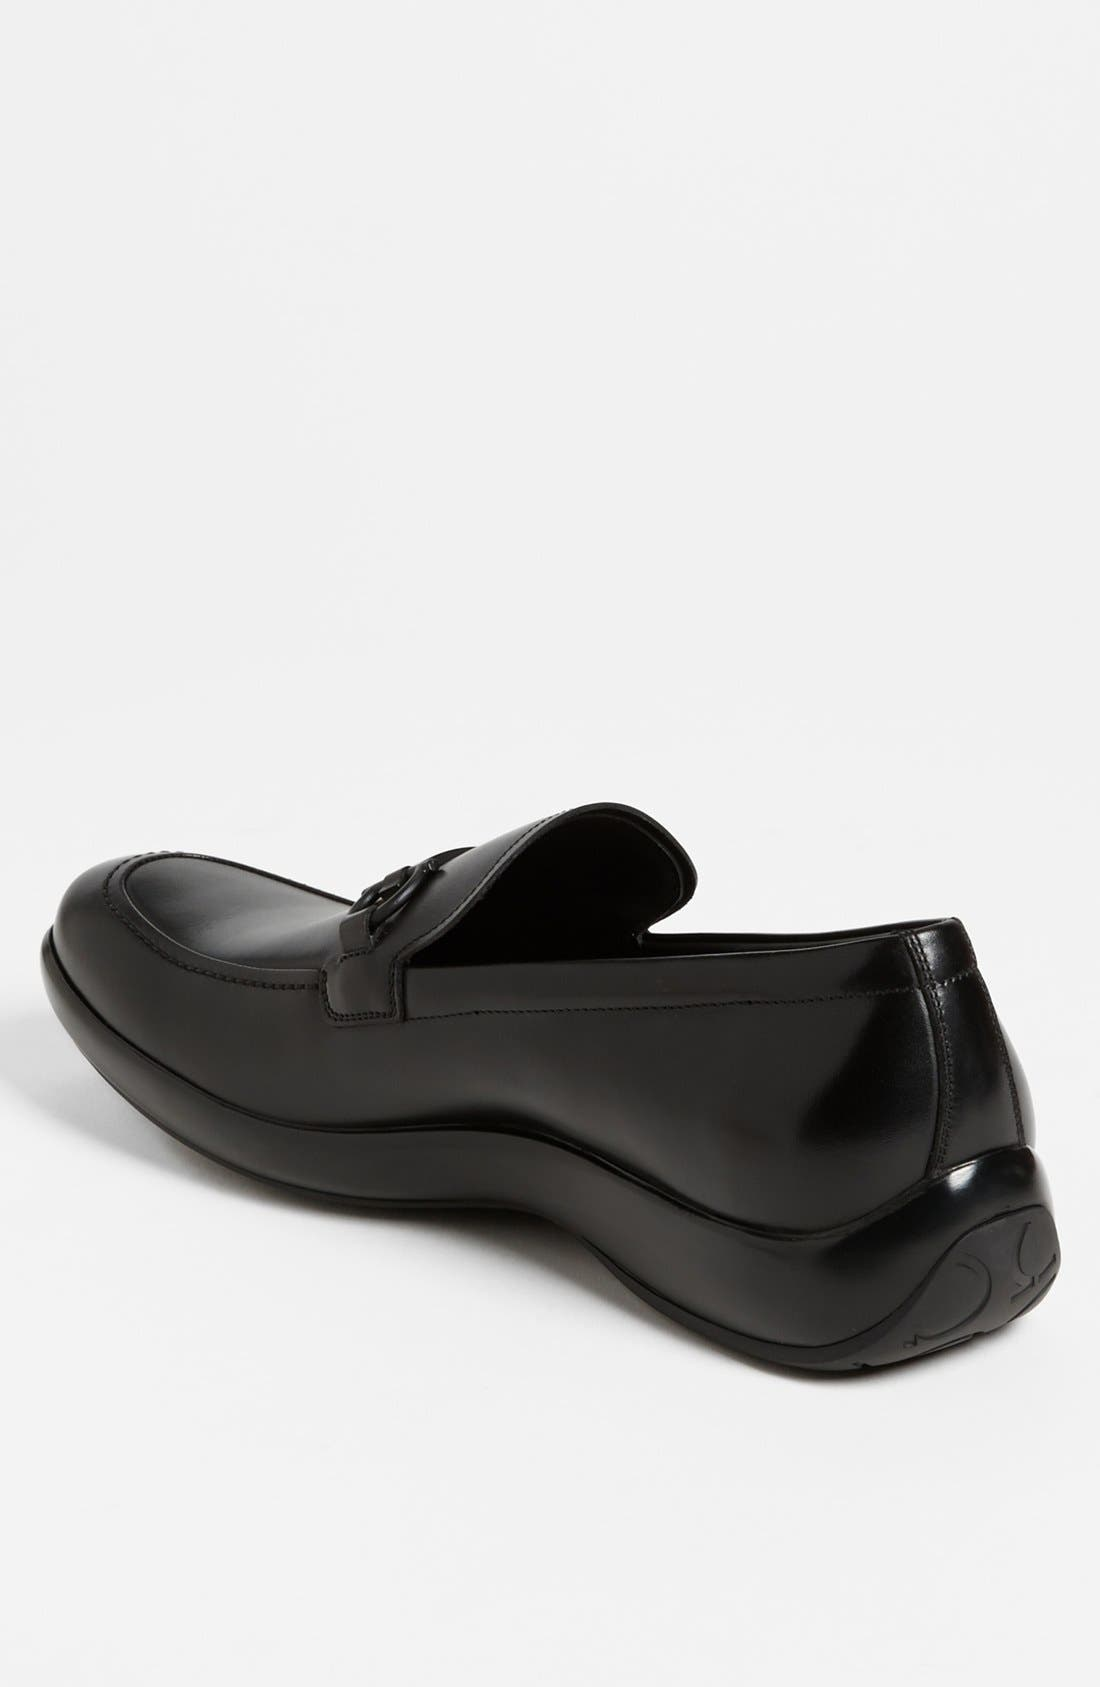 Alternate Image 2  - Salvatore Ferragamo 'Street' Bit Loafer